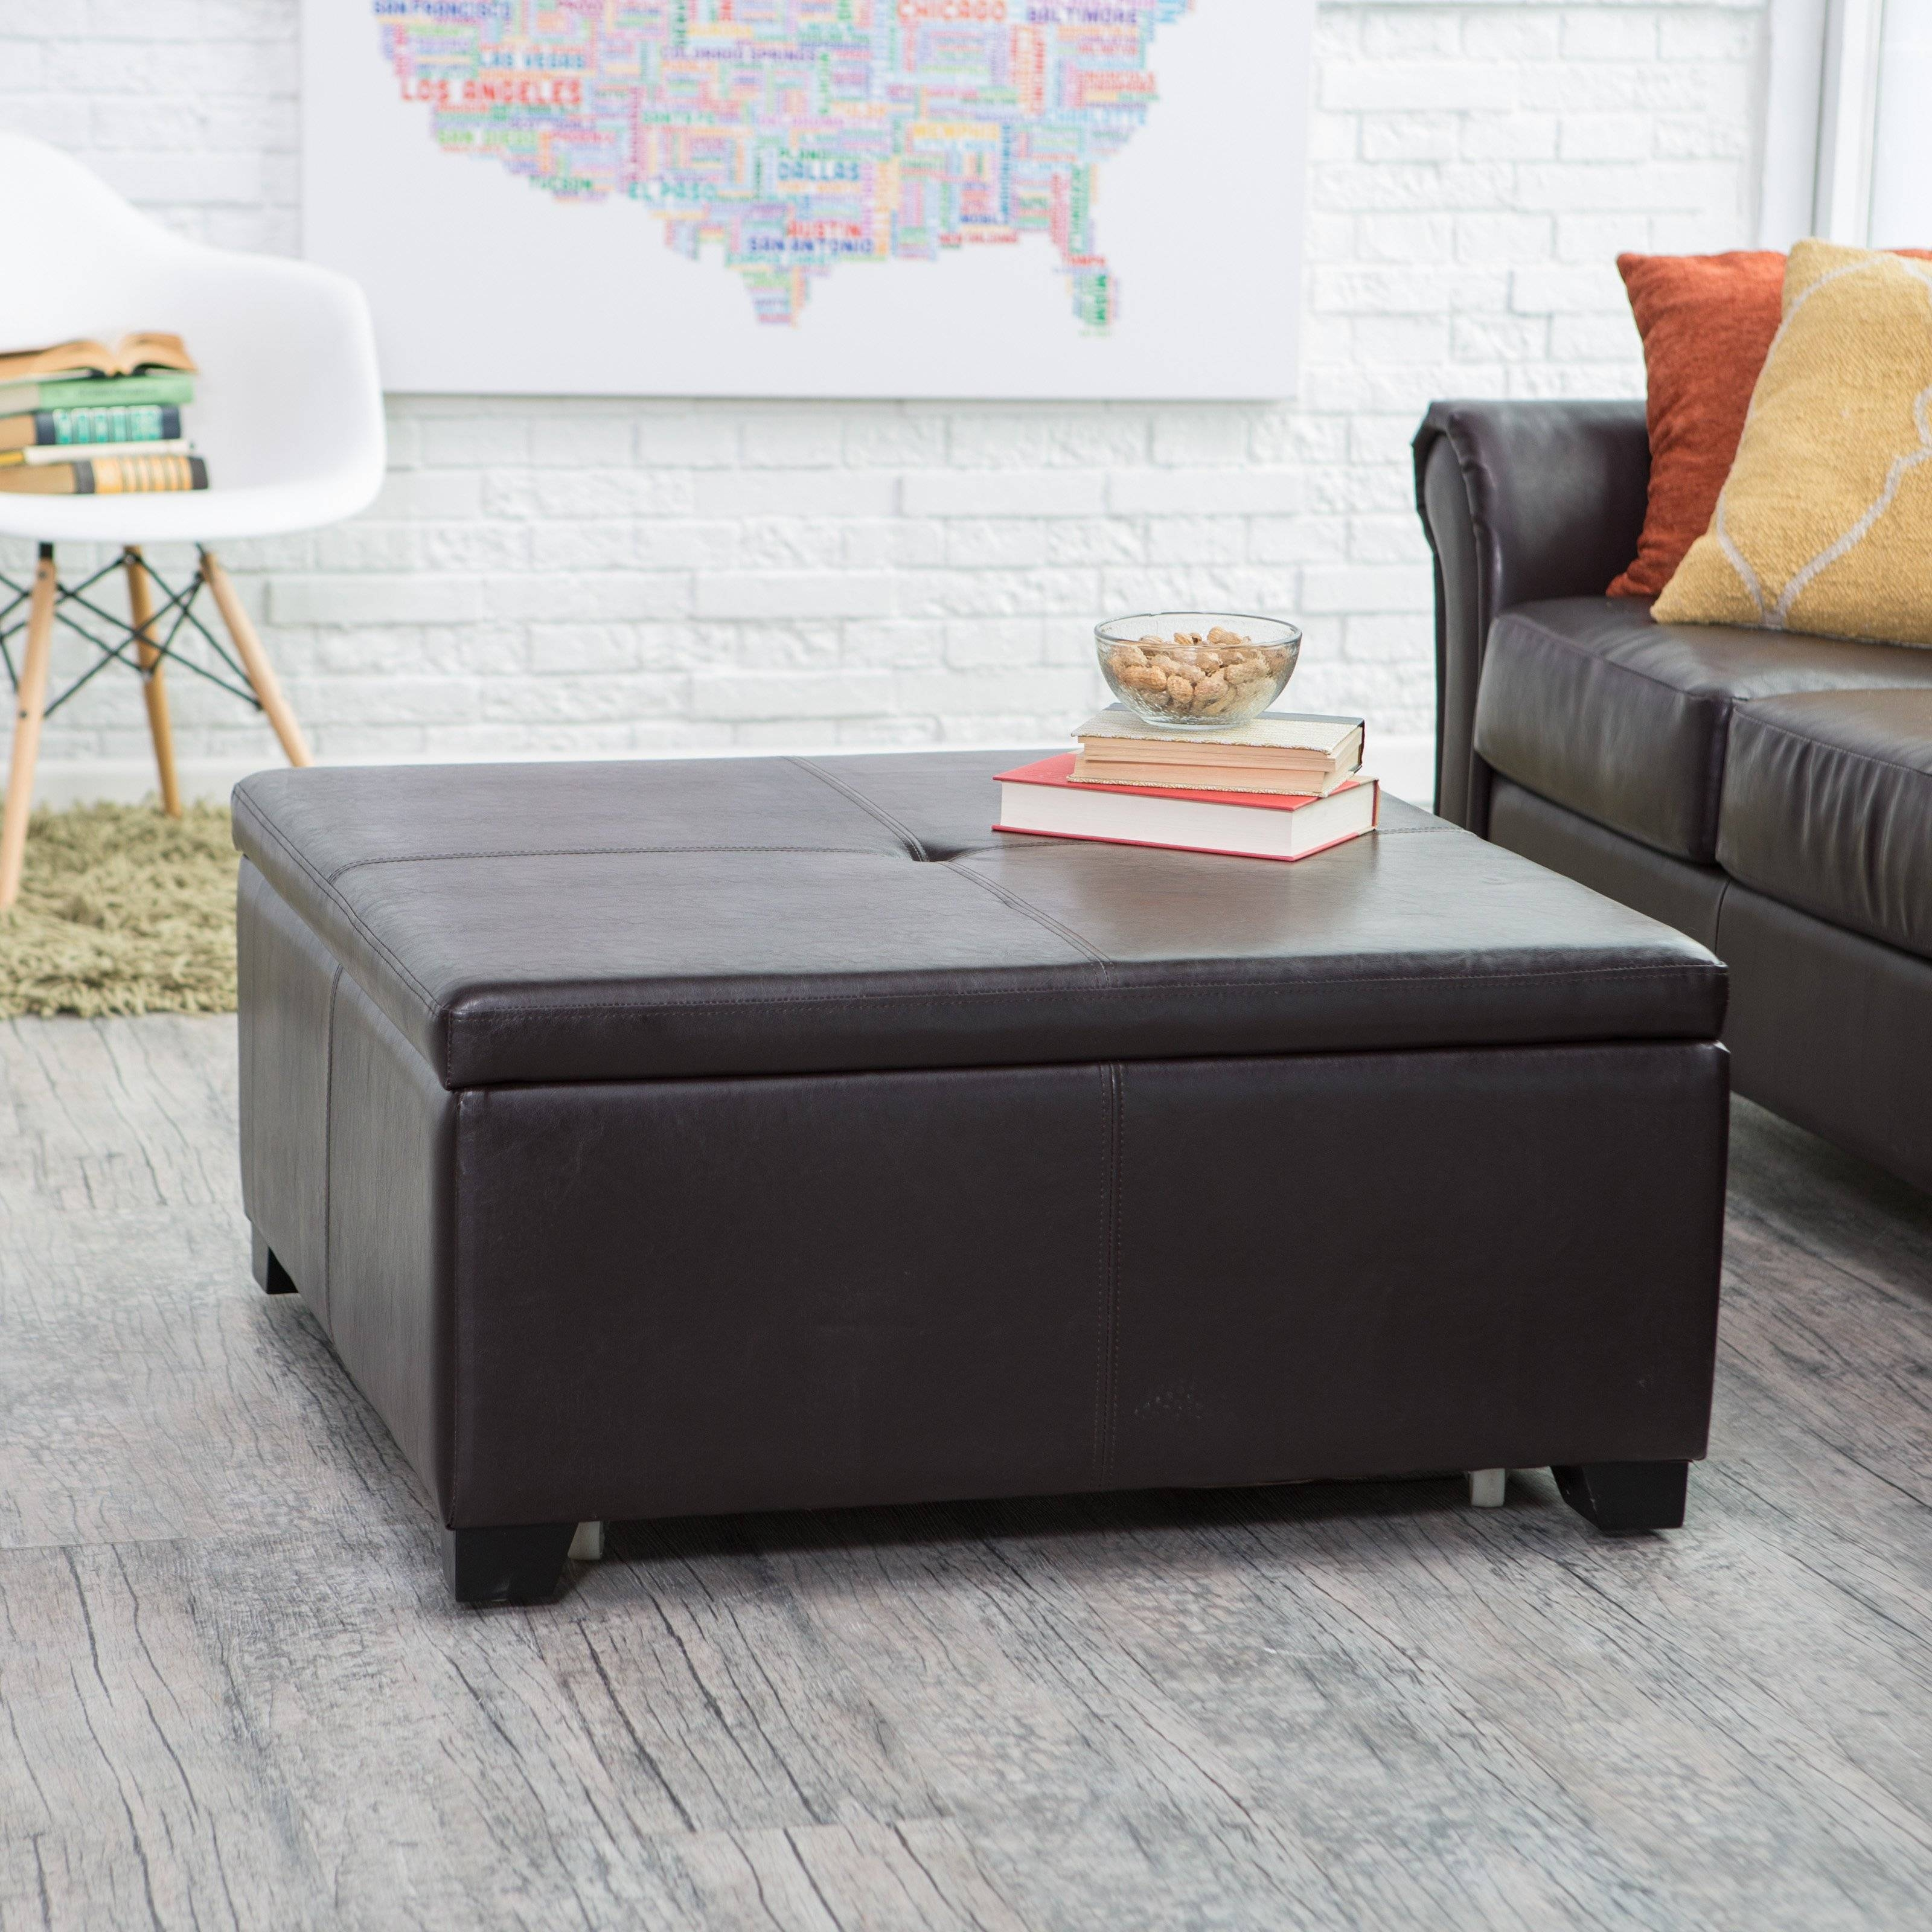 Brown Leather Coffee Table Storage Ottoman | Coffee Tables Decoration with regard to Brown Leather Ottoman Coffee Tables (Image 9 of 30)